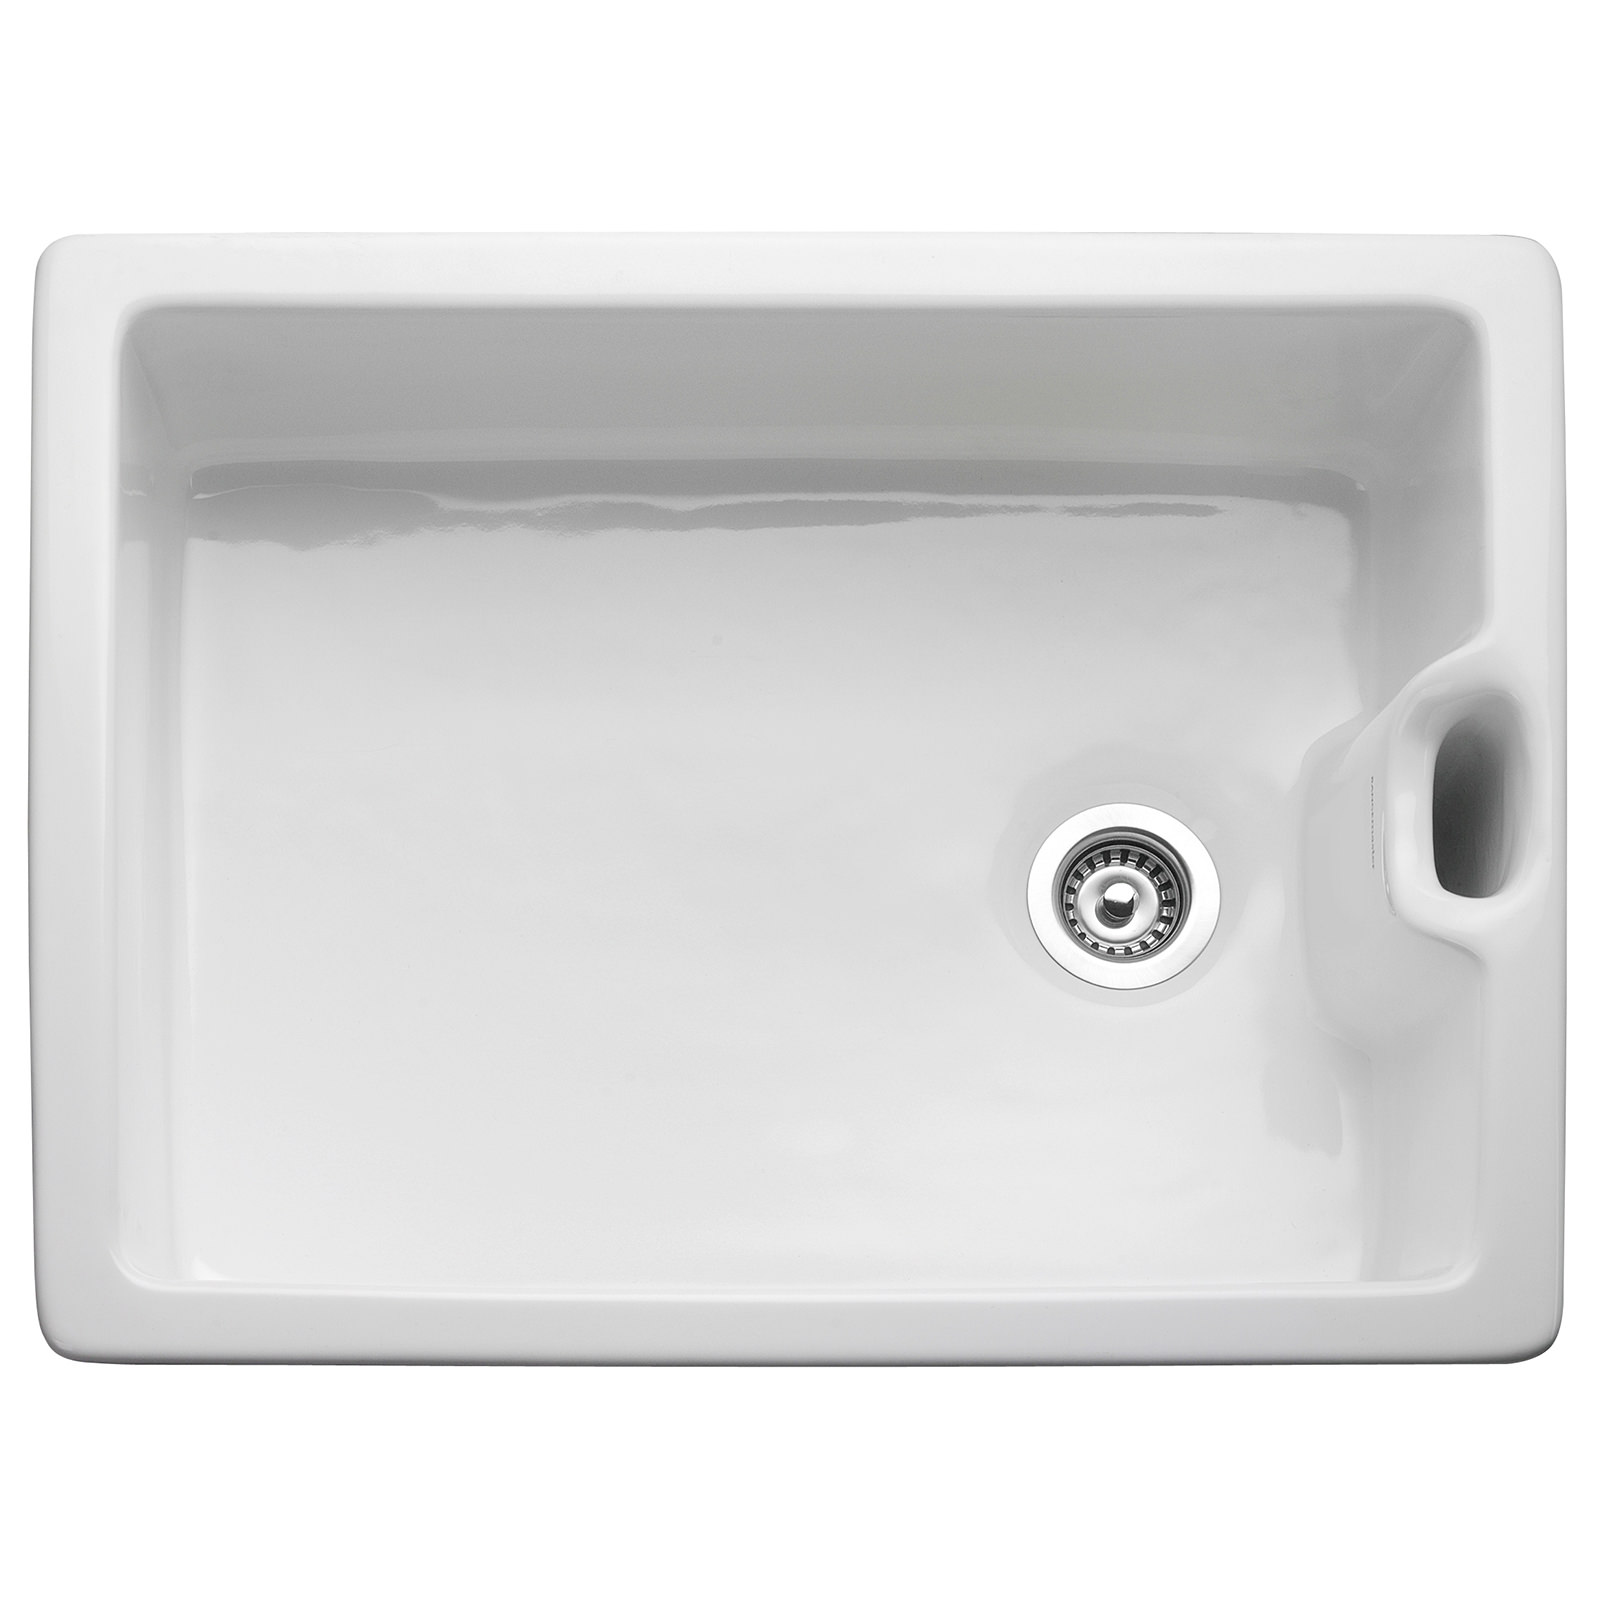 Rangemaster Classic 595 X 455mm Fire Clay Ceramic 1.0B Belfast Sink